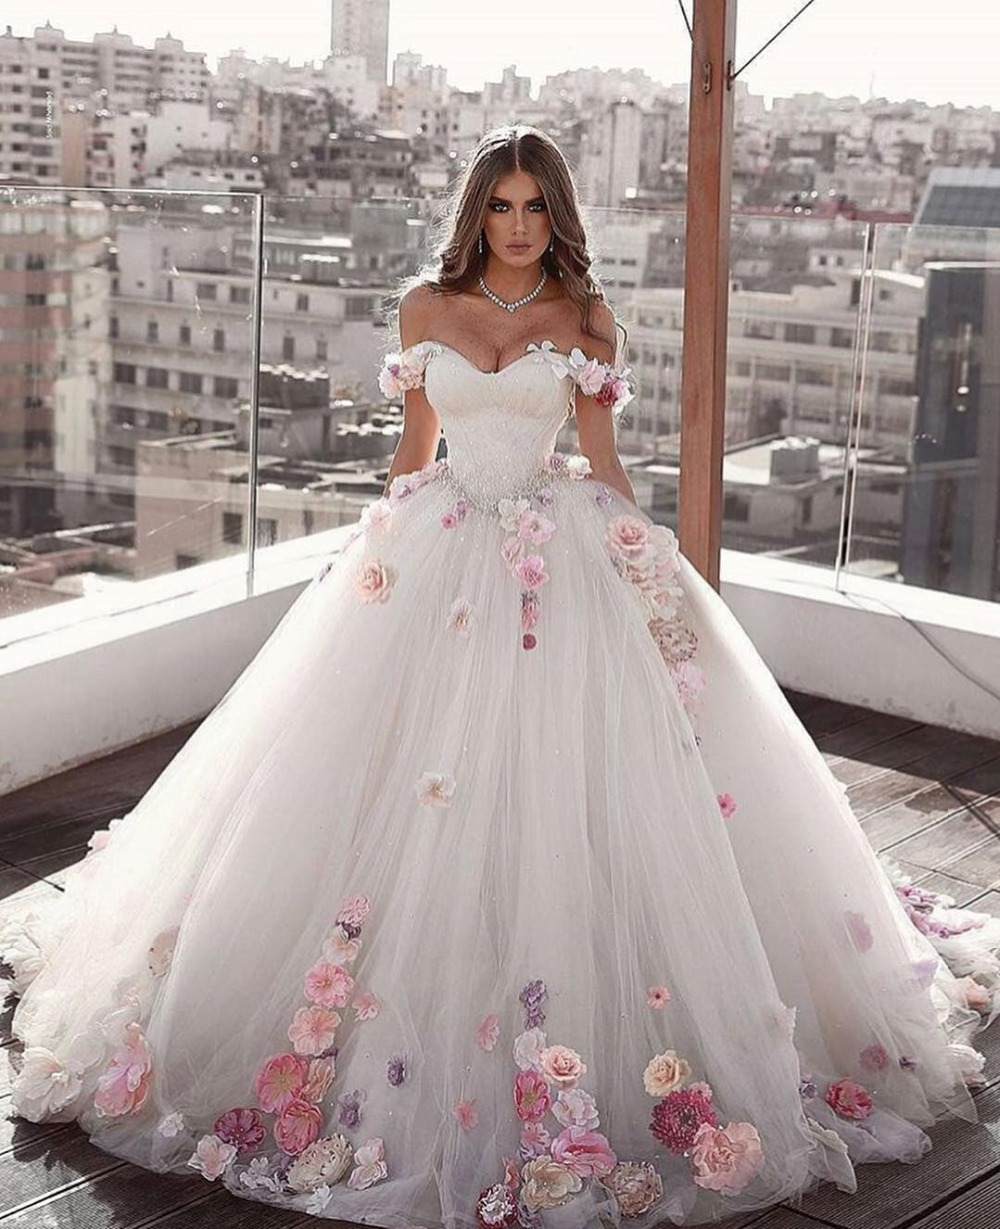 Princess Ball Gowns For Wedding: Princess Ball Gown Wedding Dress Abaric Dubai Off The